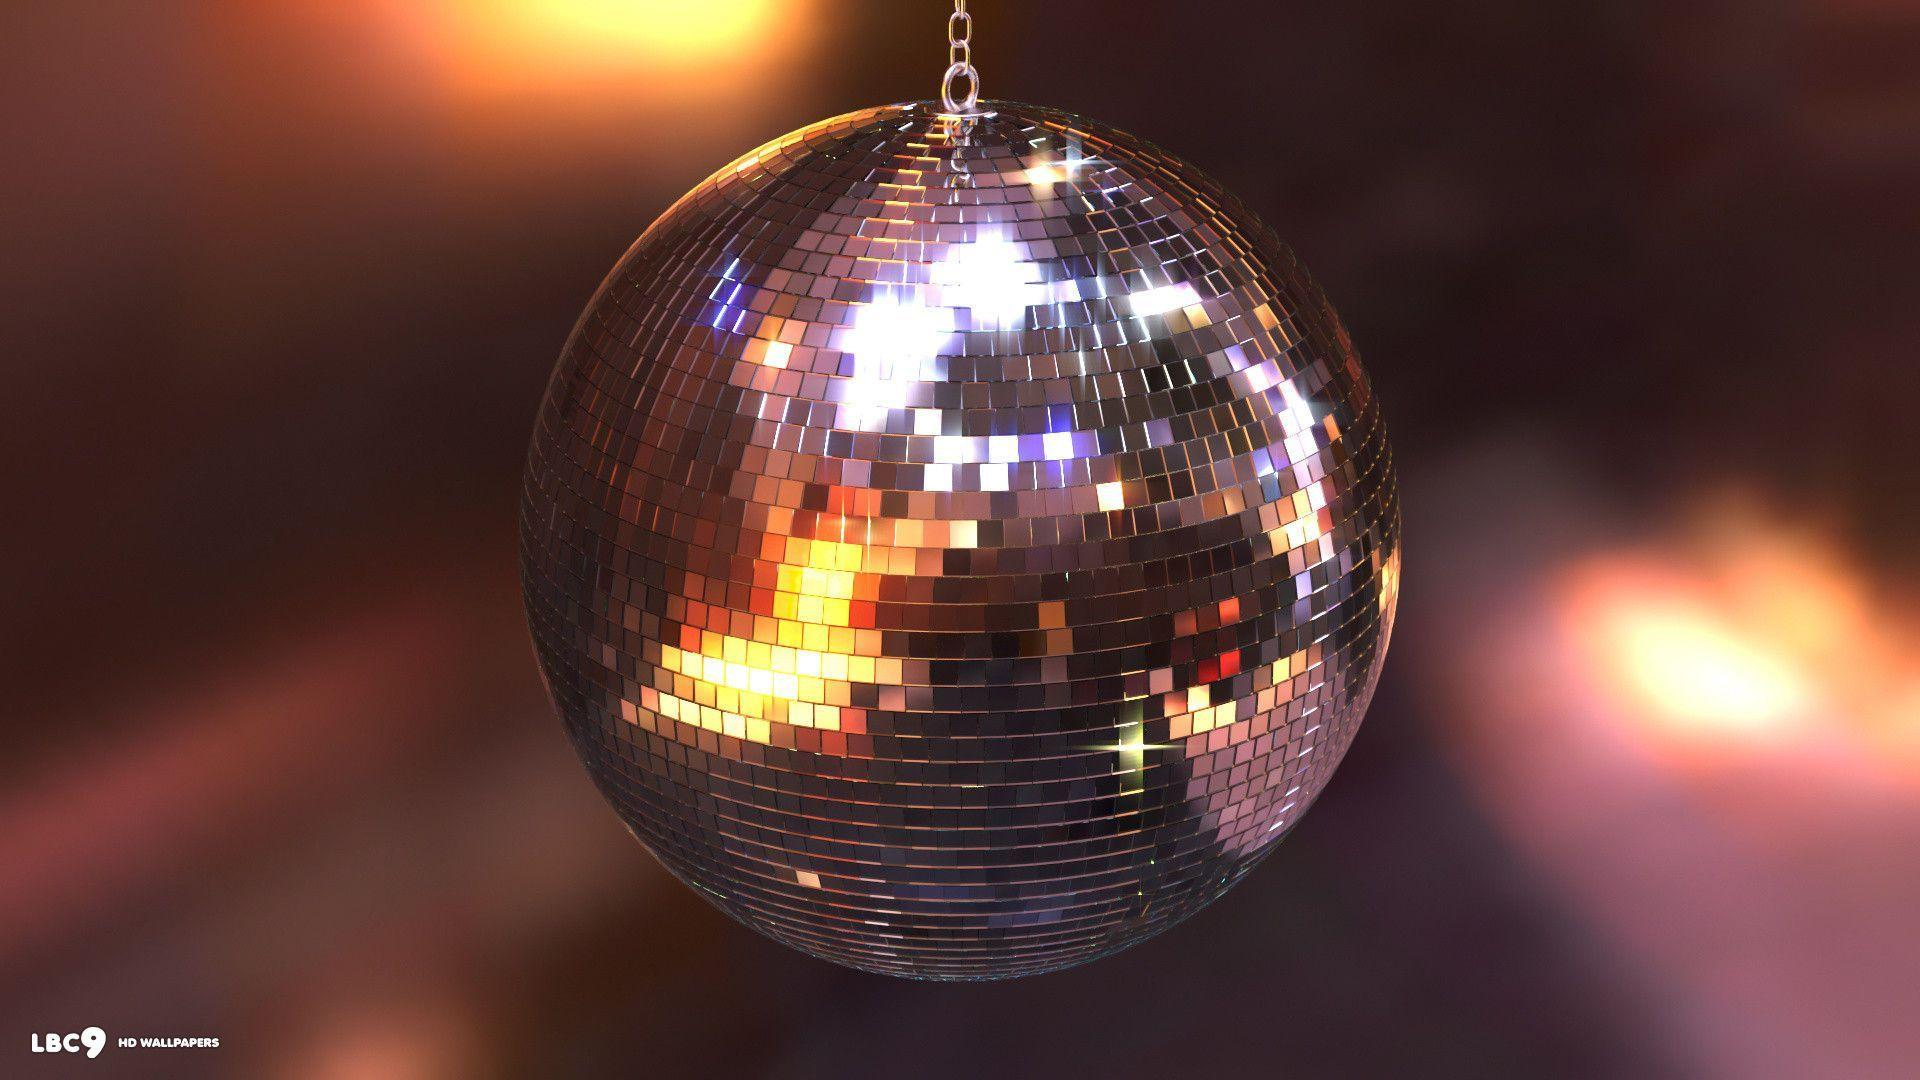 disco hd wallpapers - photo #11